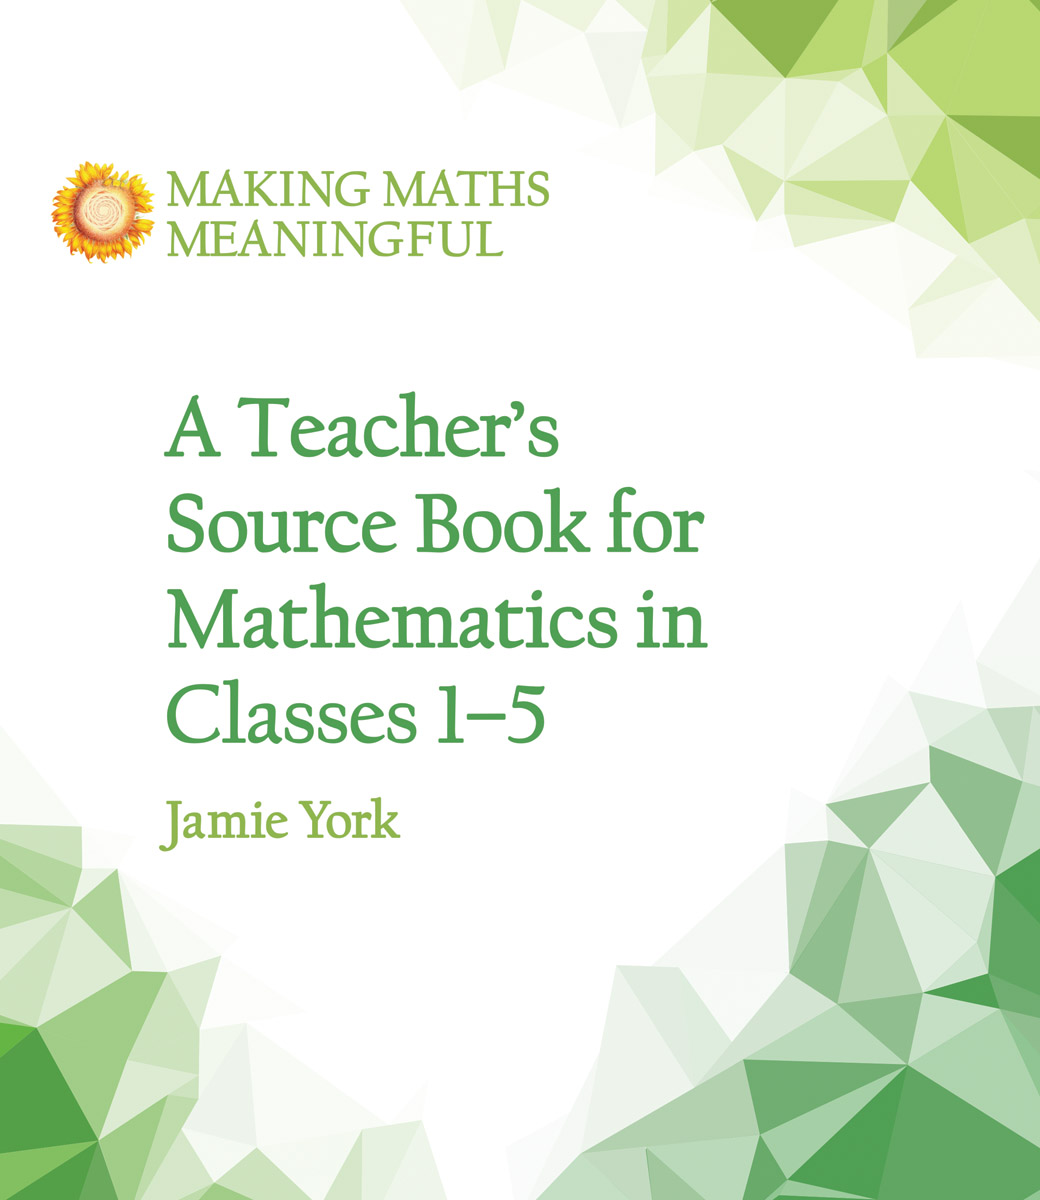 Teaching Maths Teacher S Source Book For Mathematics In Classes 1 To 5 Making Maths Meaningful